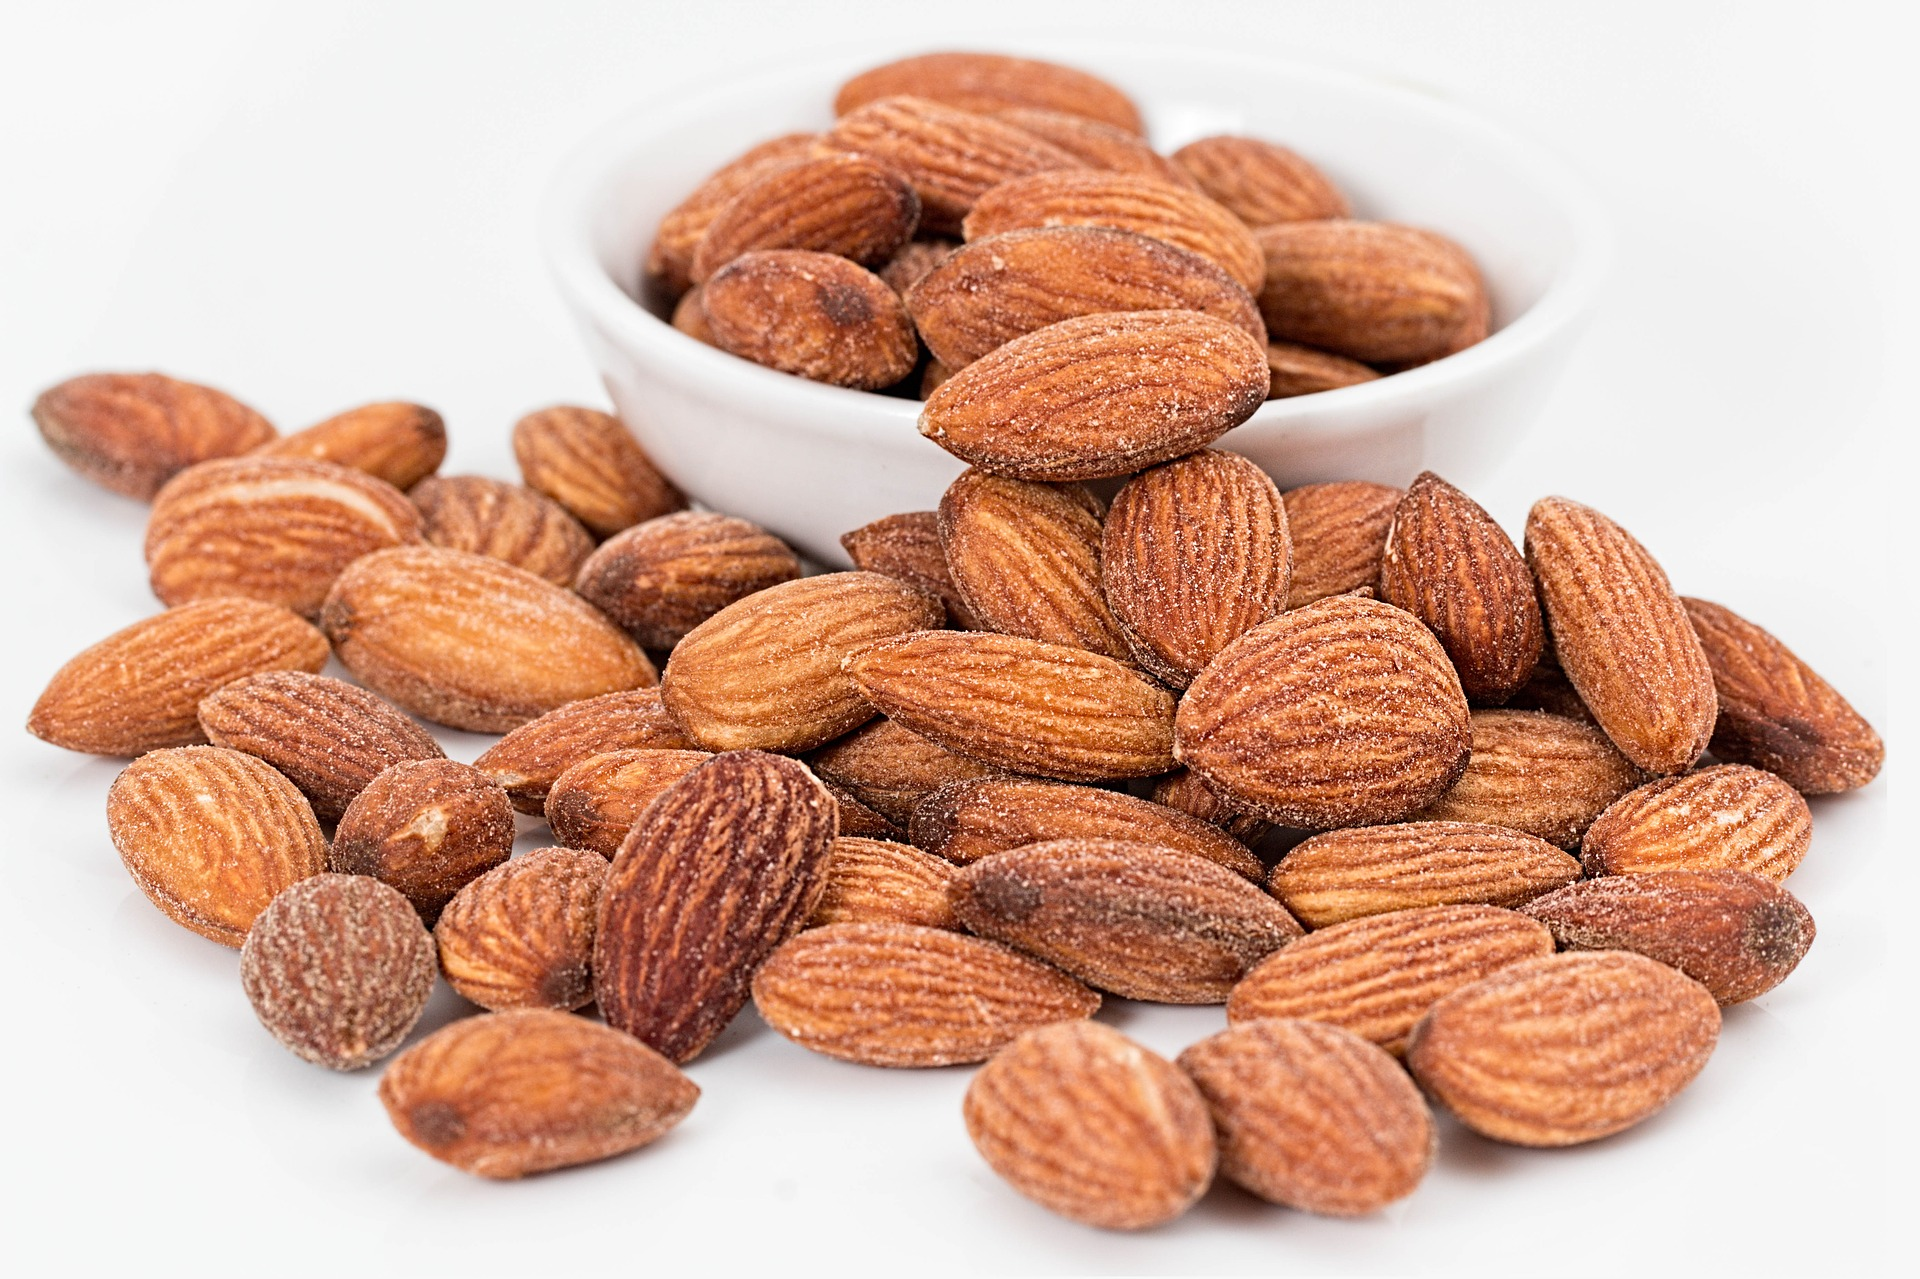 Almonds, a healthy vegan keto snack